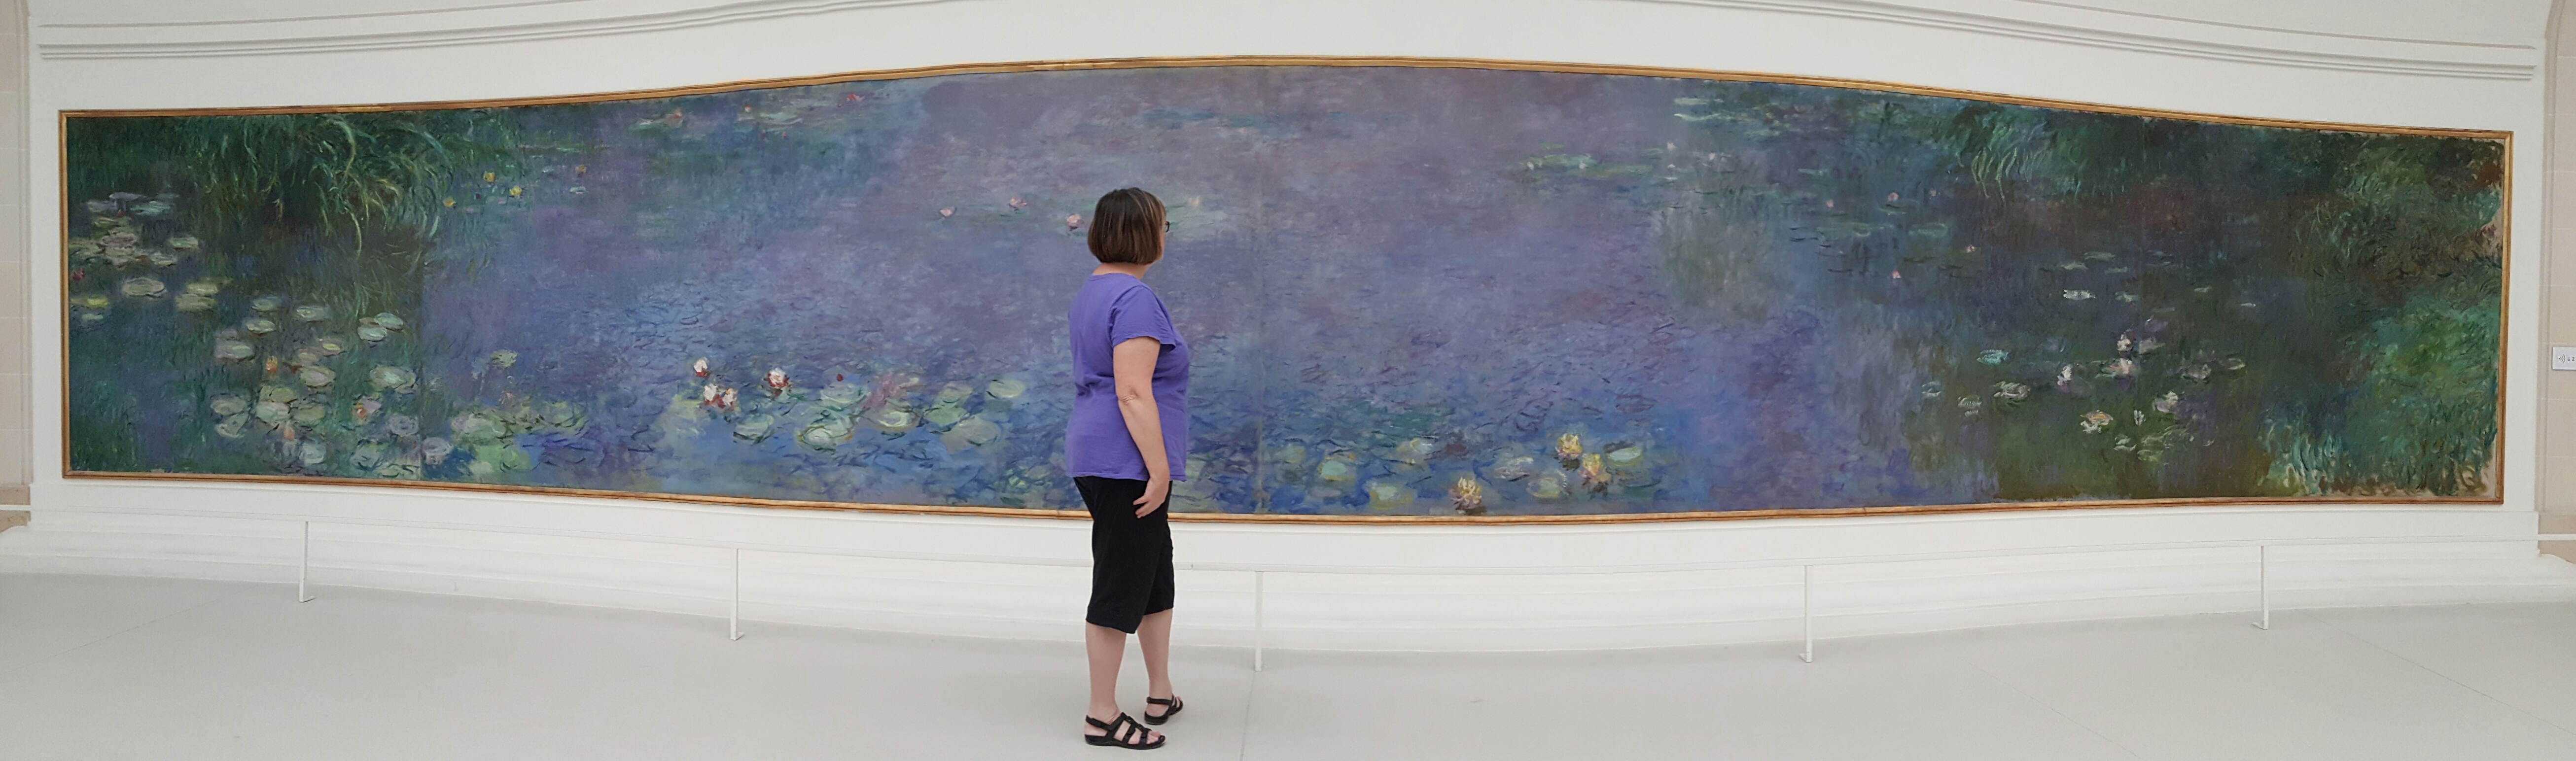 Monet's water lilies painting, Paris